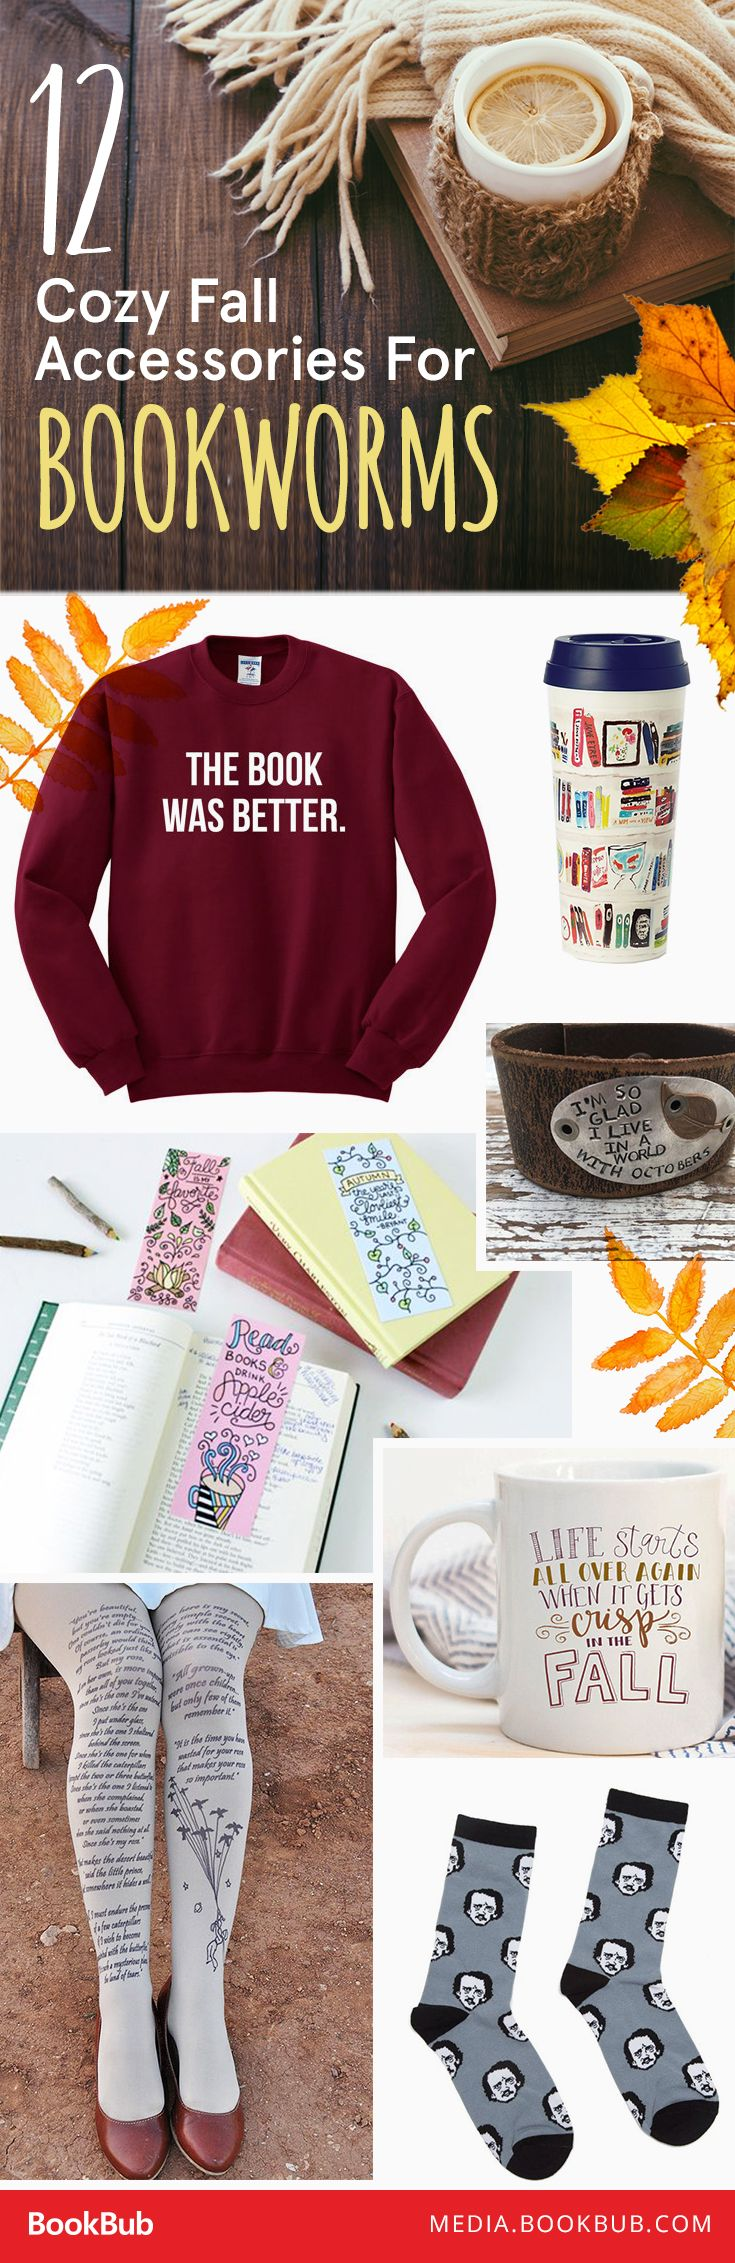 12 cozy fall accessories for bookworms. These make perfect gifts for your bookish friends!